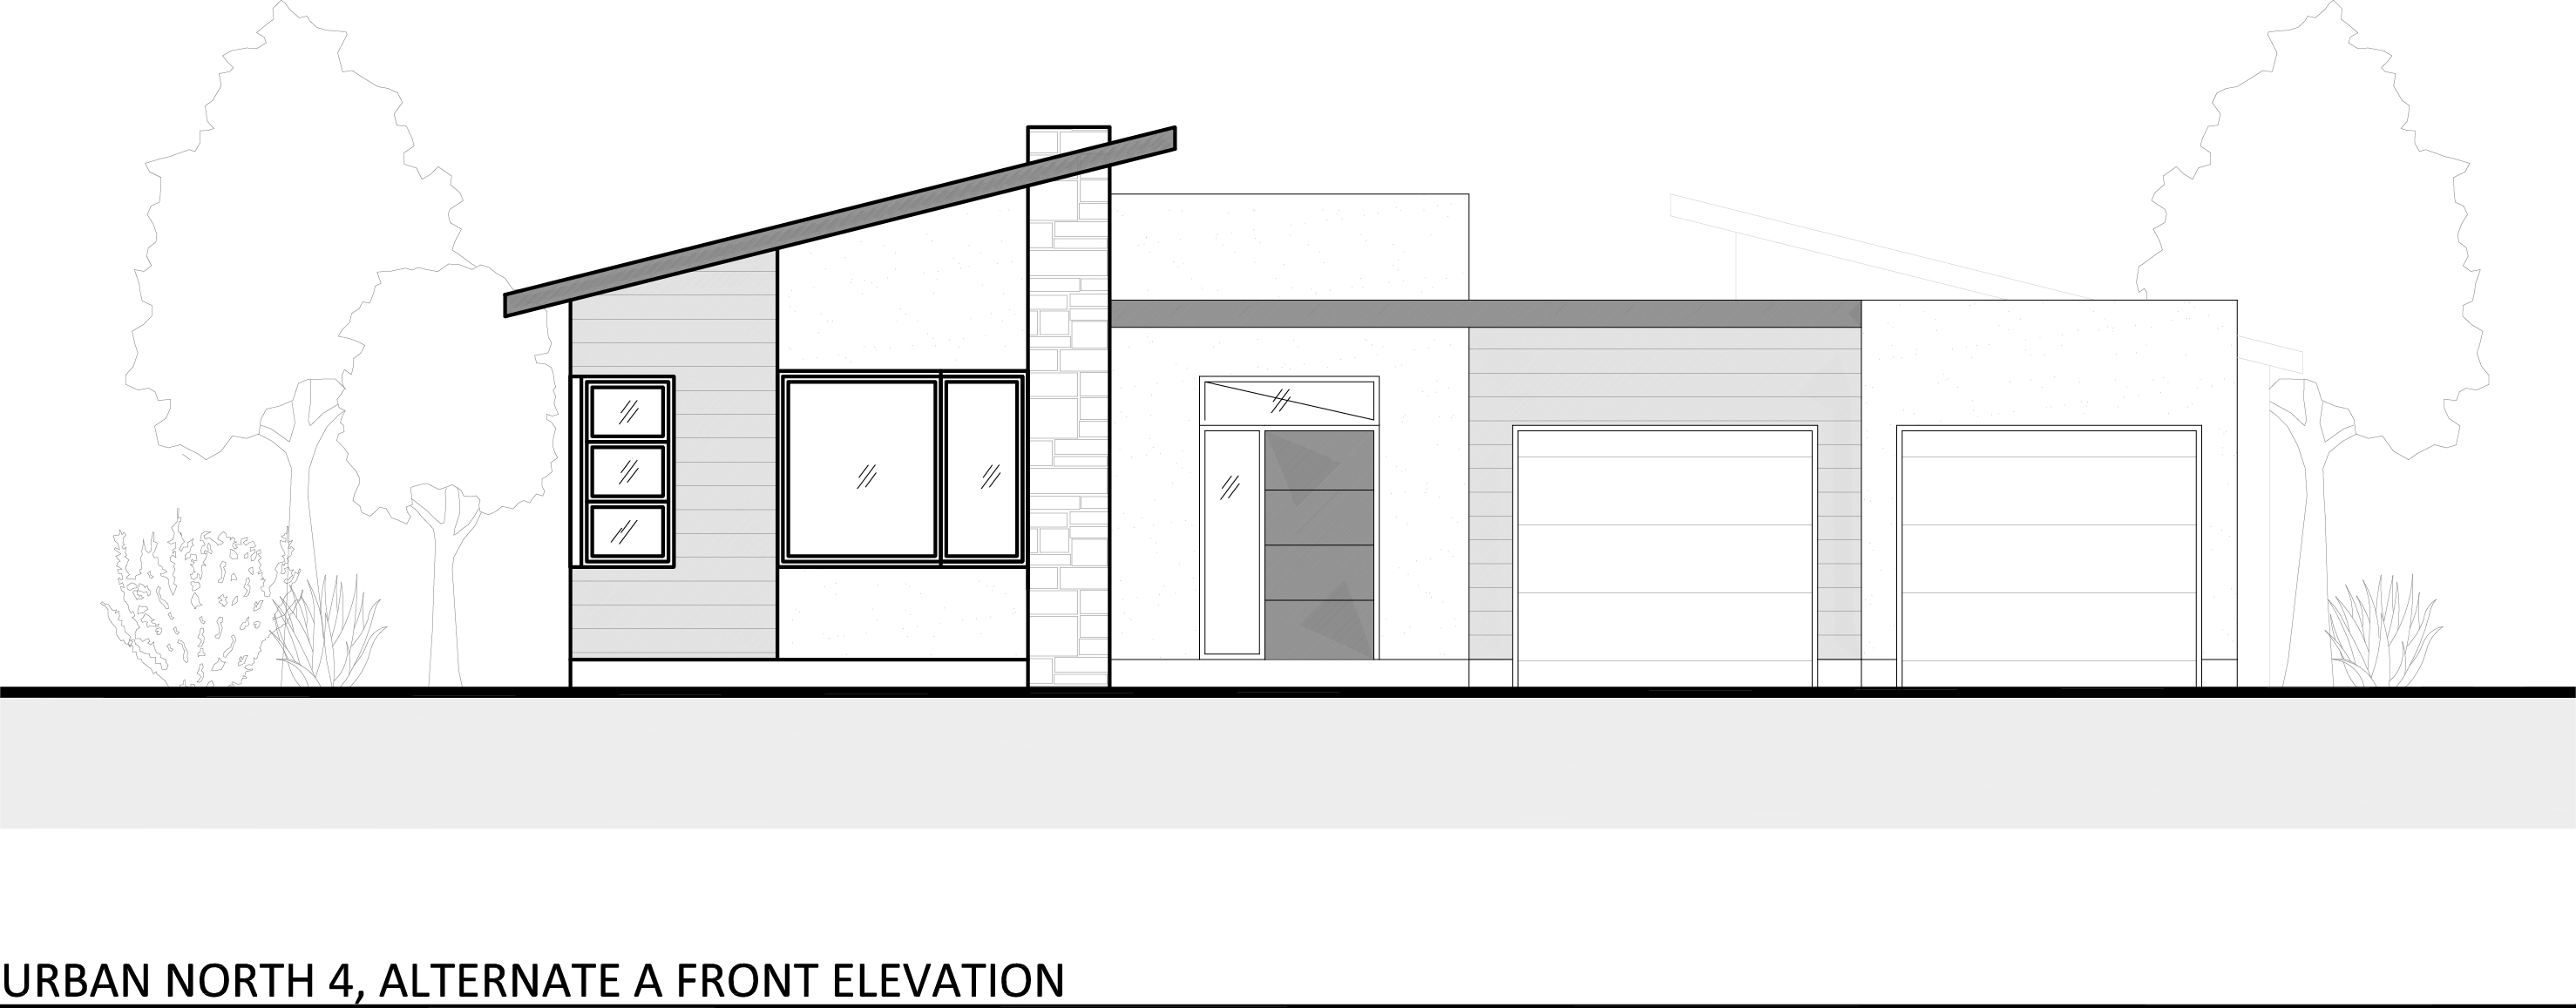 Elevation Plan Profile : House plan urban north kcmo s new modern subdivision